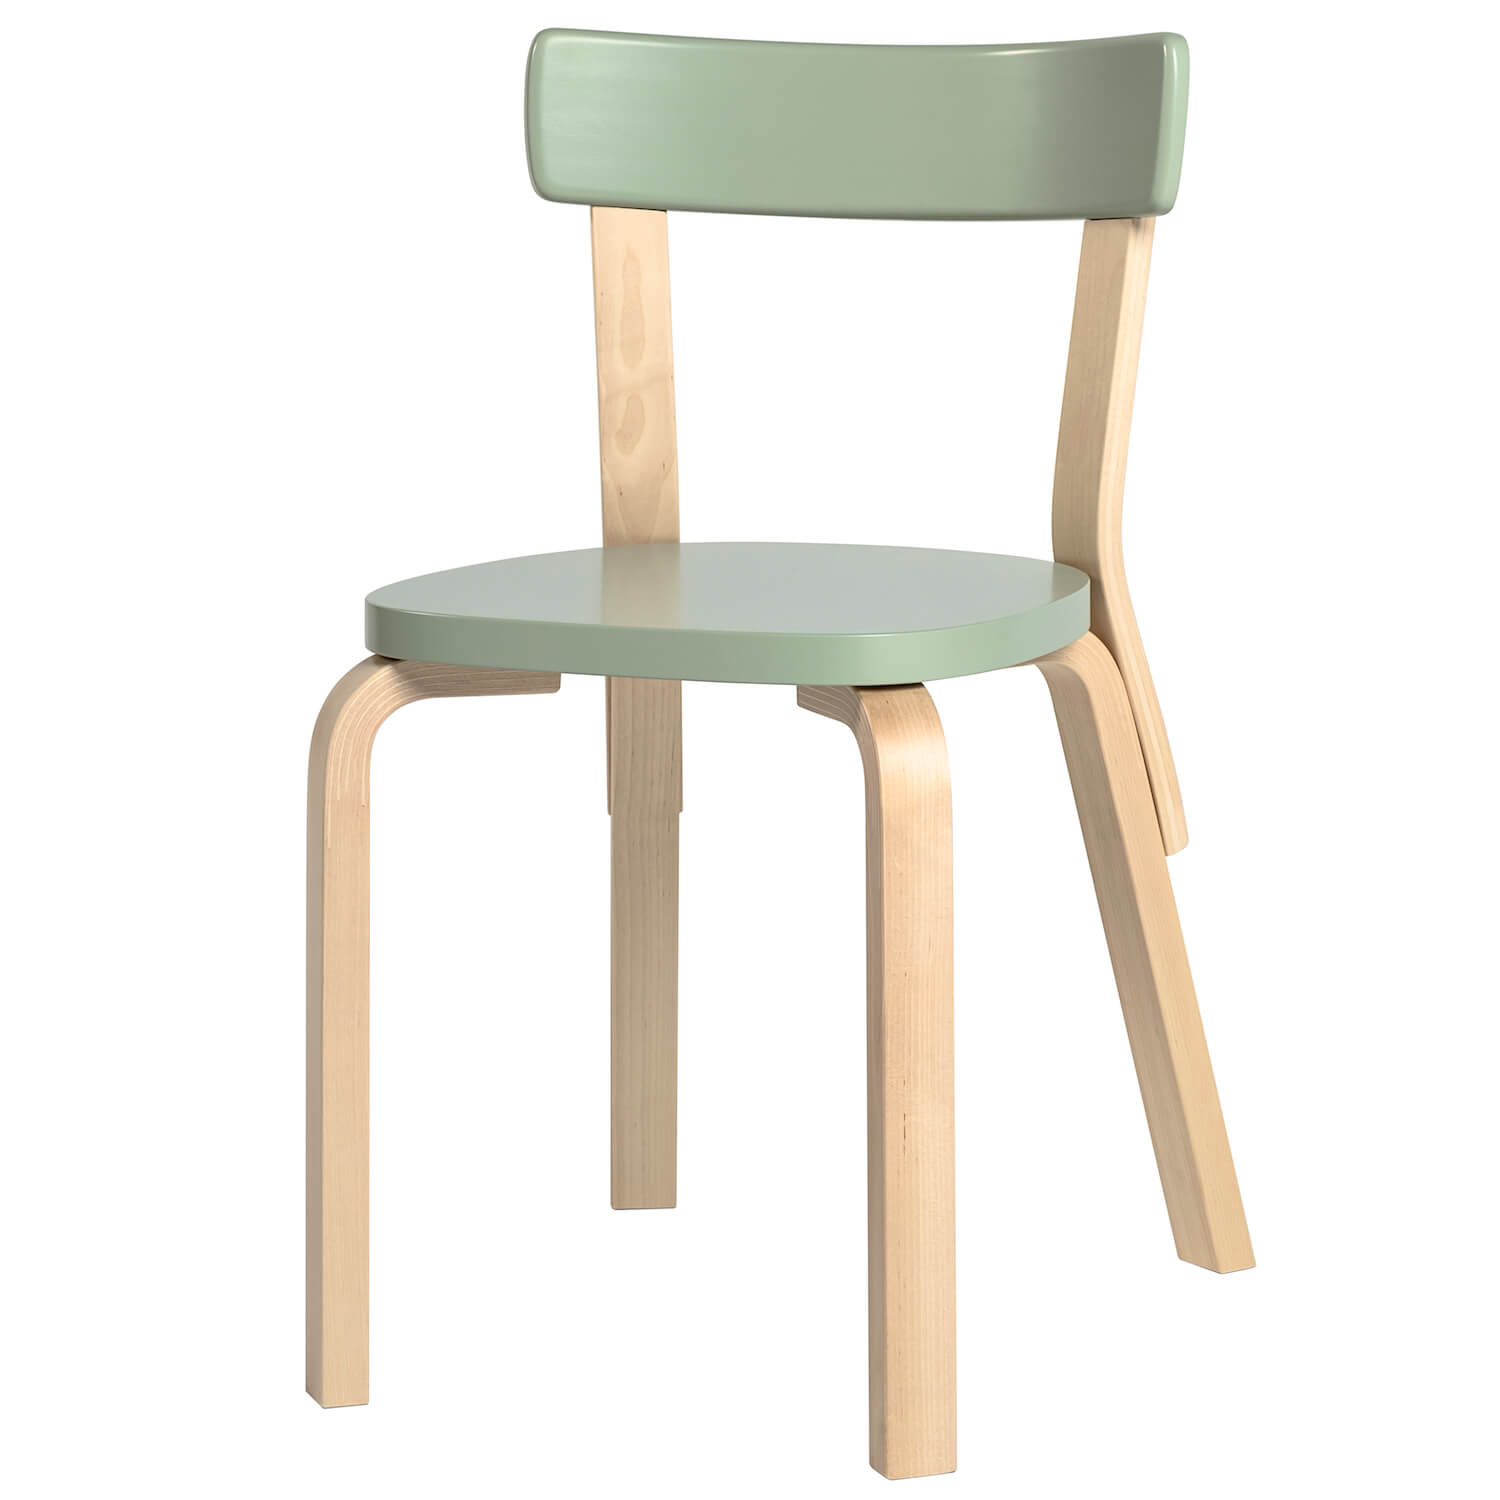 Artek 69 chair green